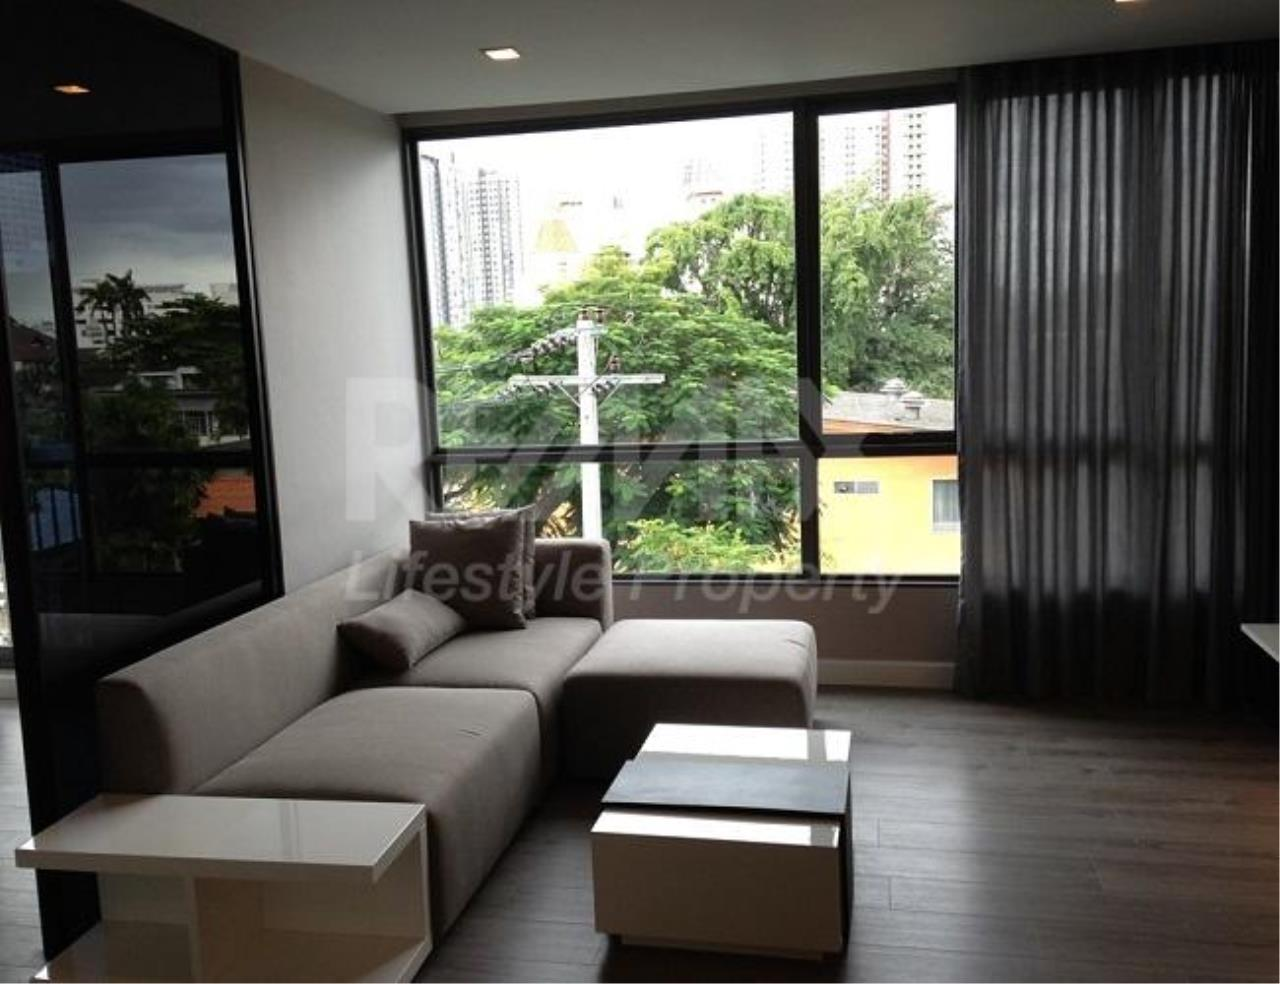 RE/MAX LifeStyle Property Agency's The Room Sukhumvit 40 5